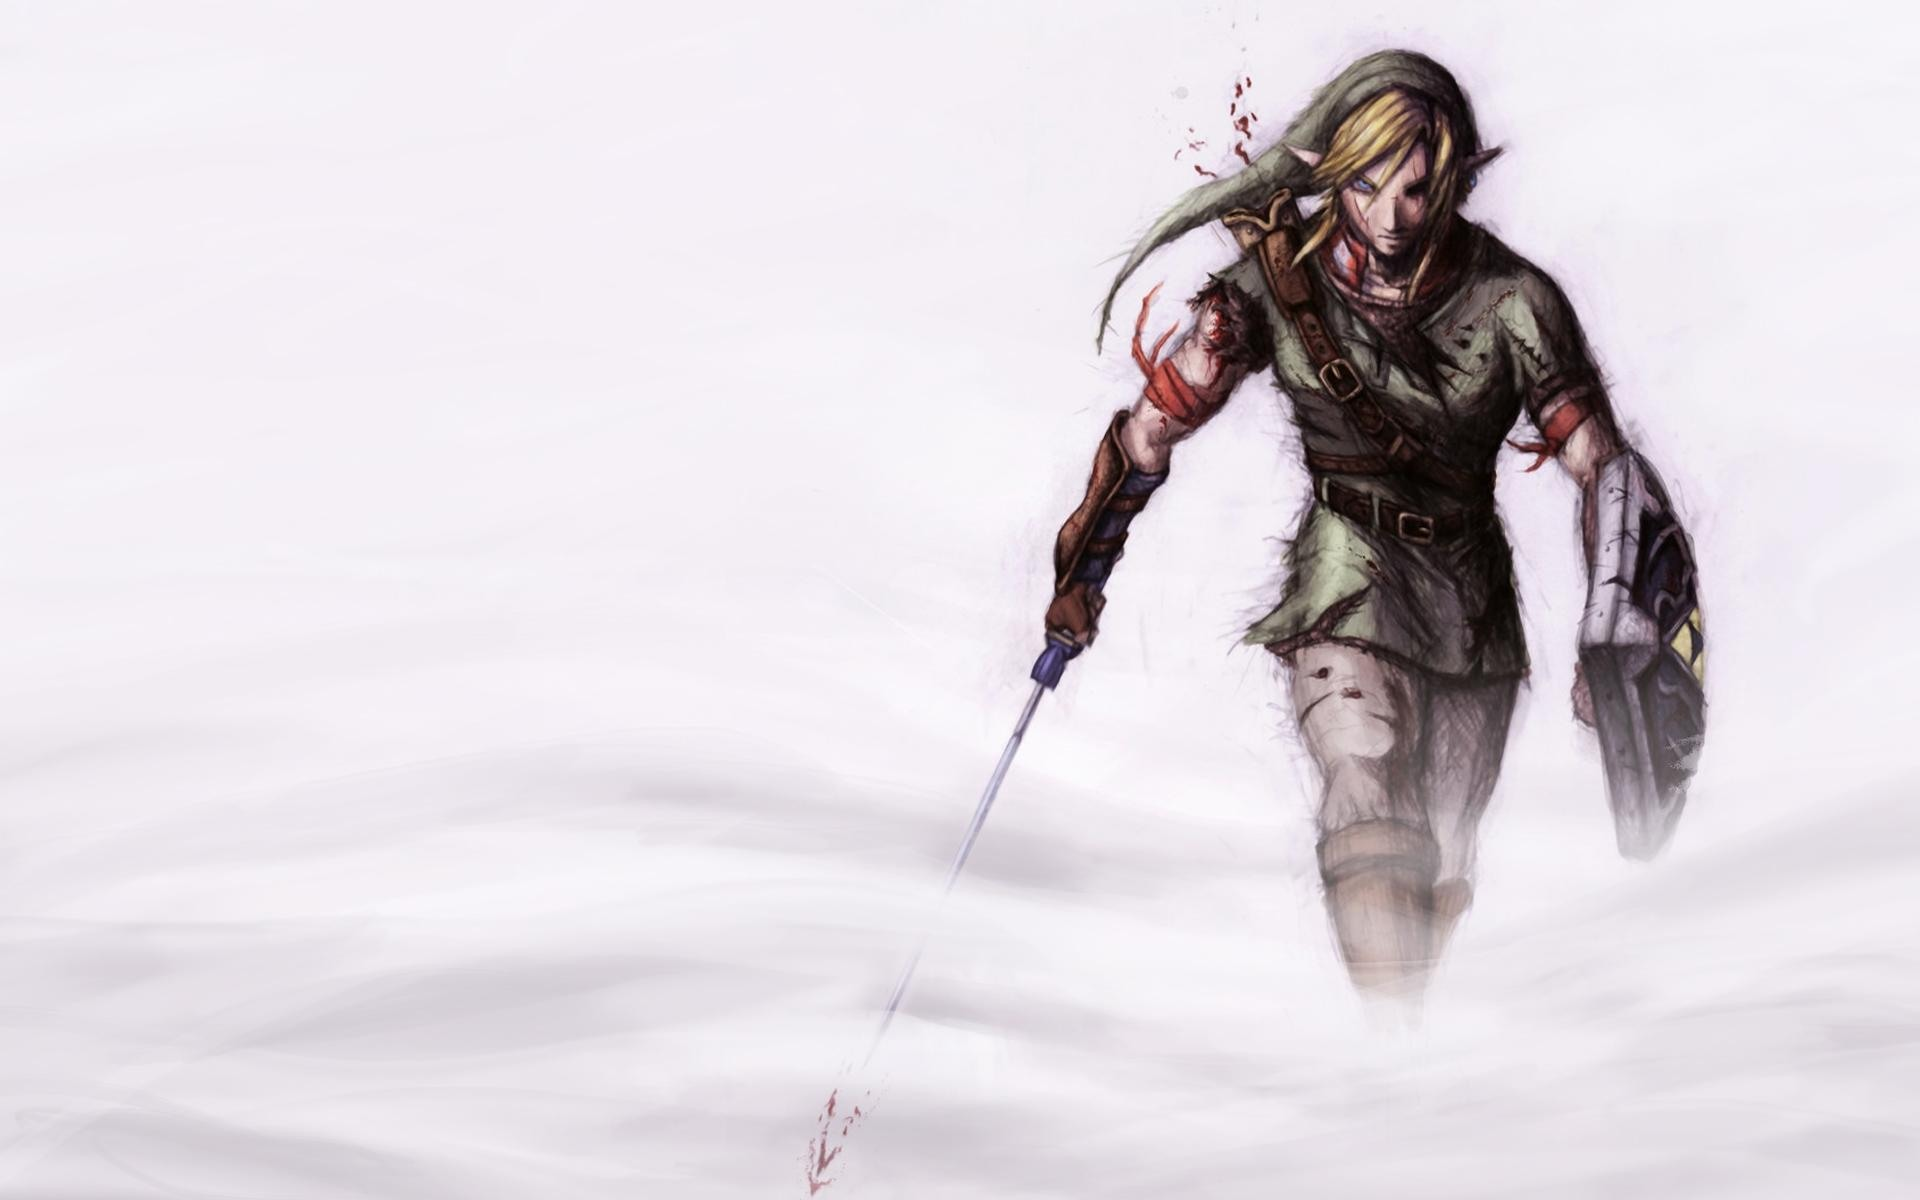 Wallpapers Zelda Xtreme